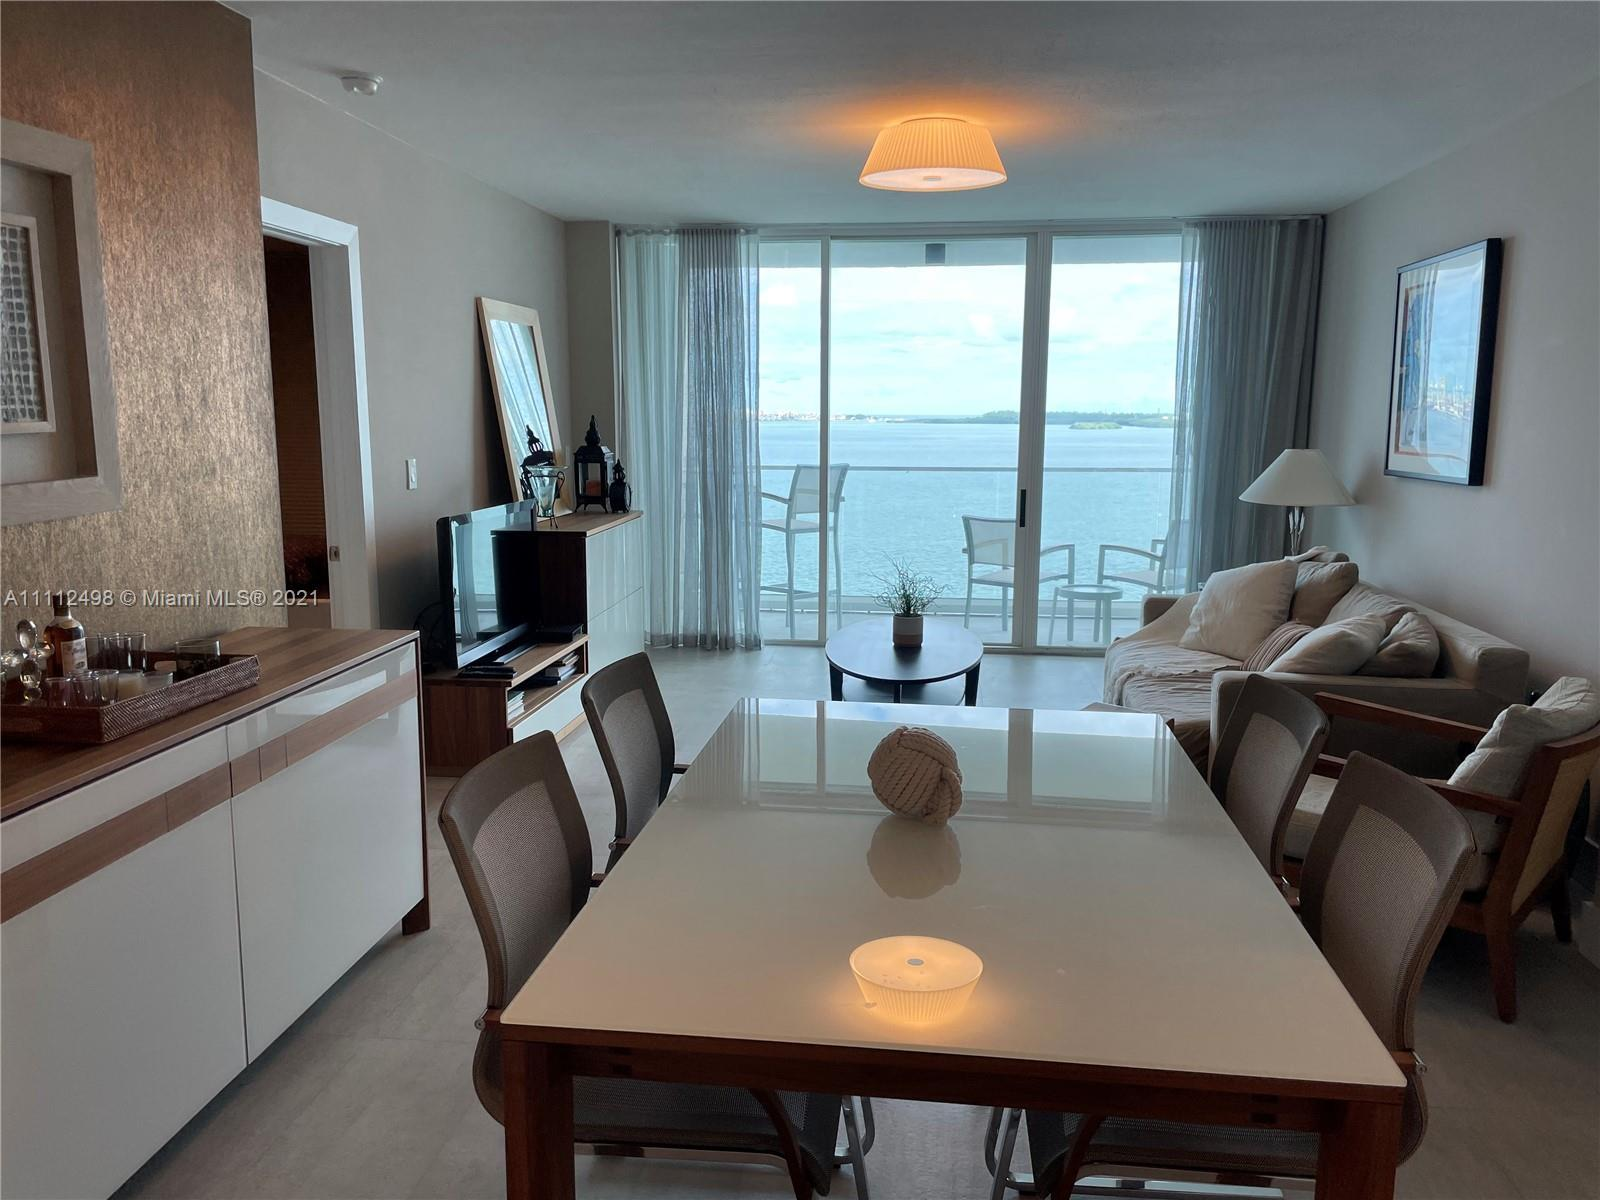 Open bay view from every room. This gorgeous RE-MODELED Brickell Key 2 bedroom, 2 bathroom residence